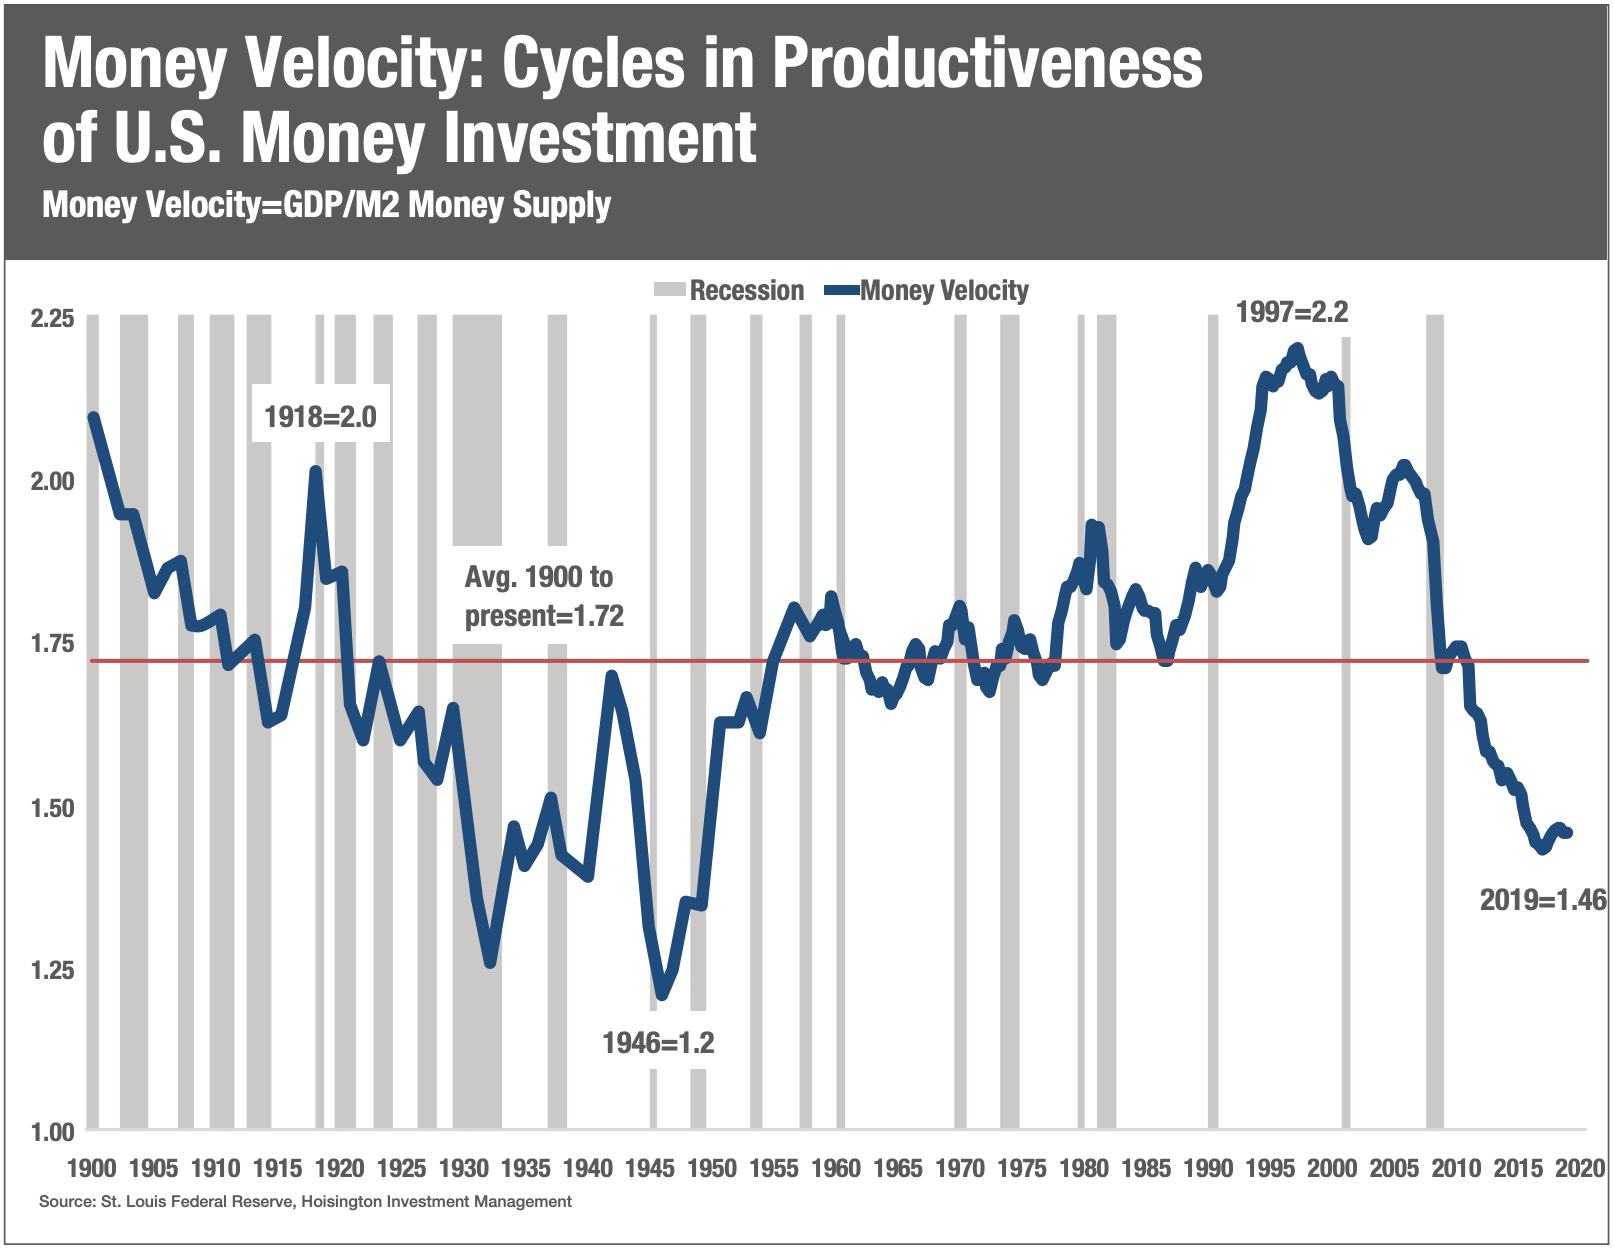 https://www.westlakefinancialadvisors.com/wp-content/uploads/2019/12/Money-Velocity-Cycles.png